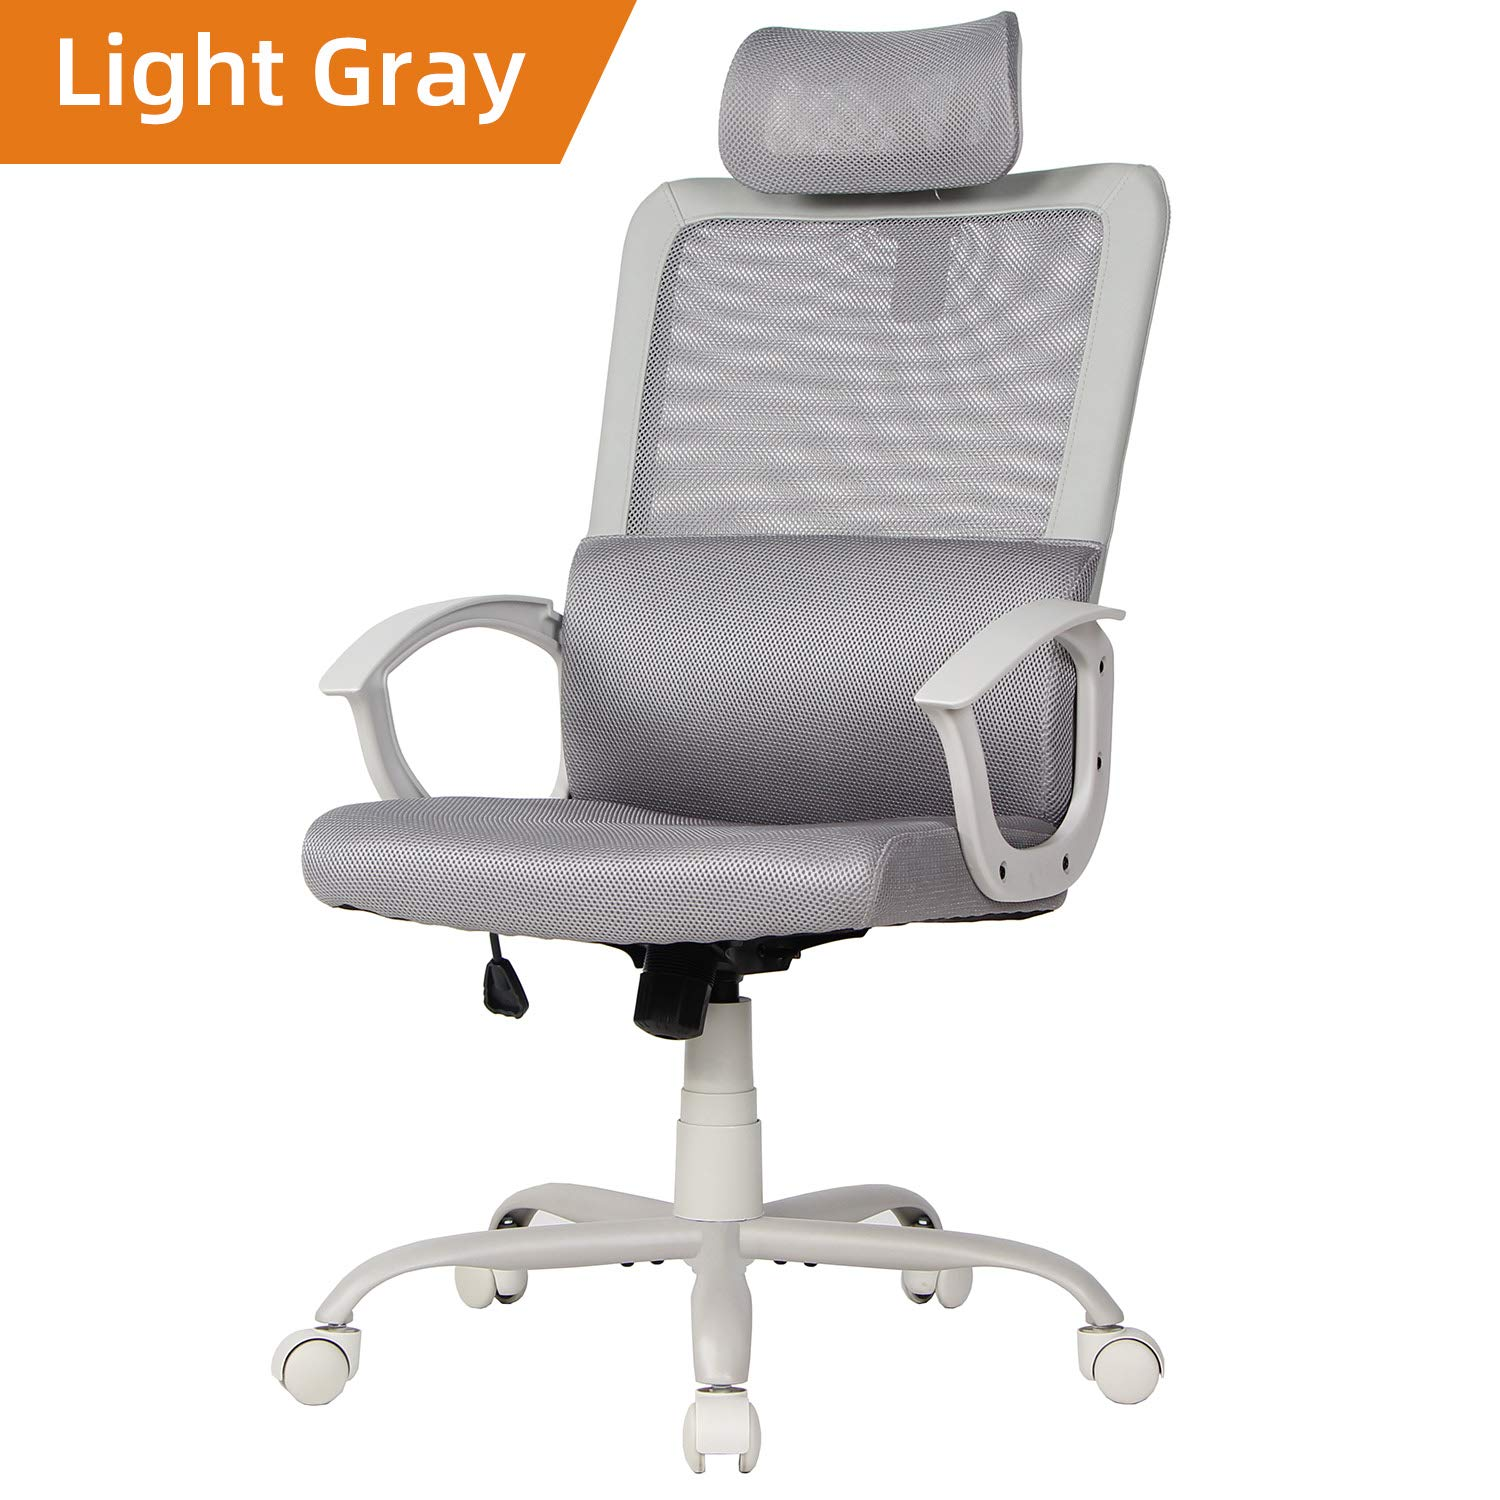 Ergonomic Office Chair Adjustable Headrest Mesh Office Chair Office Desk Chair Computer Task Chair (Light Gray)